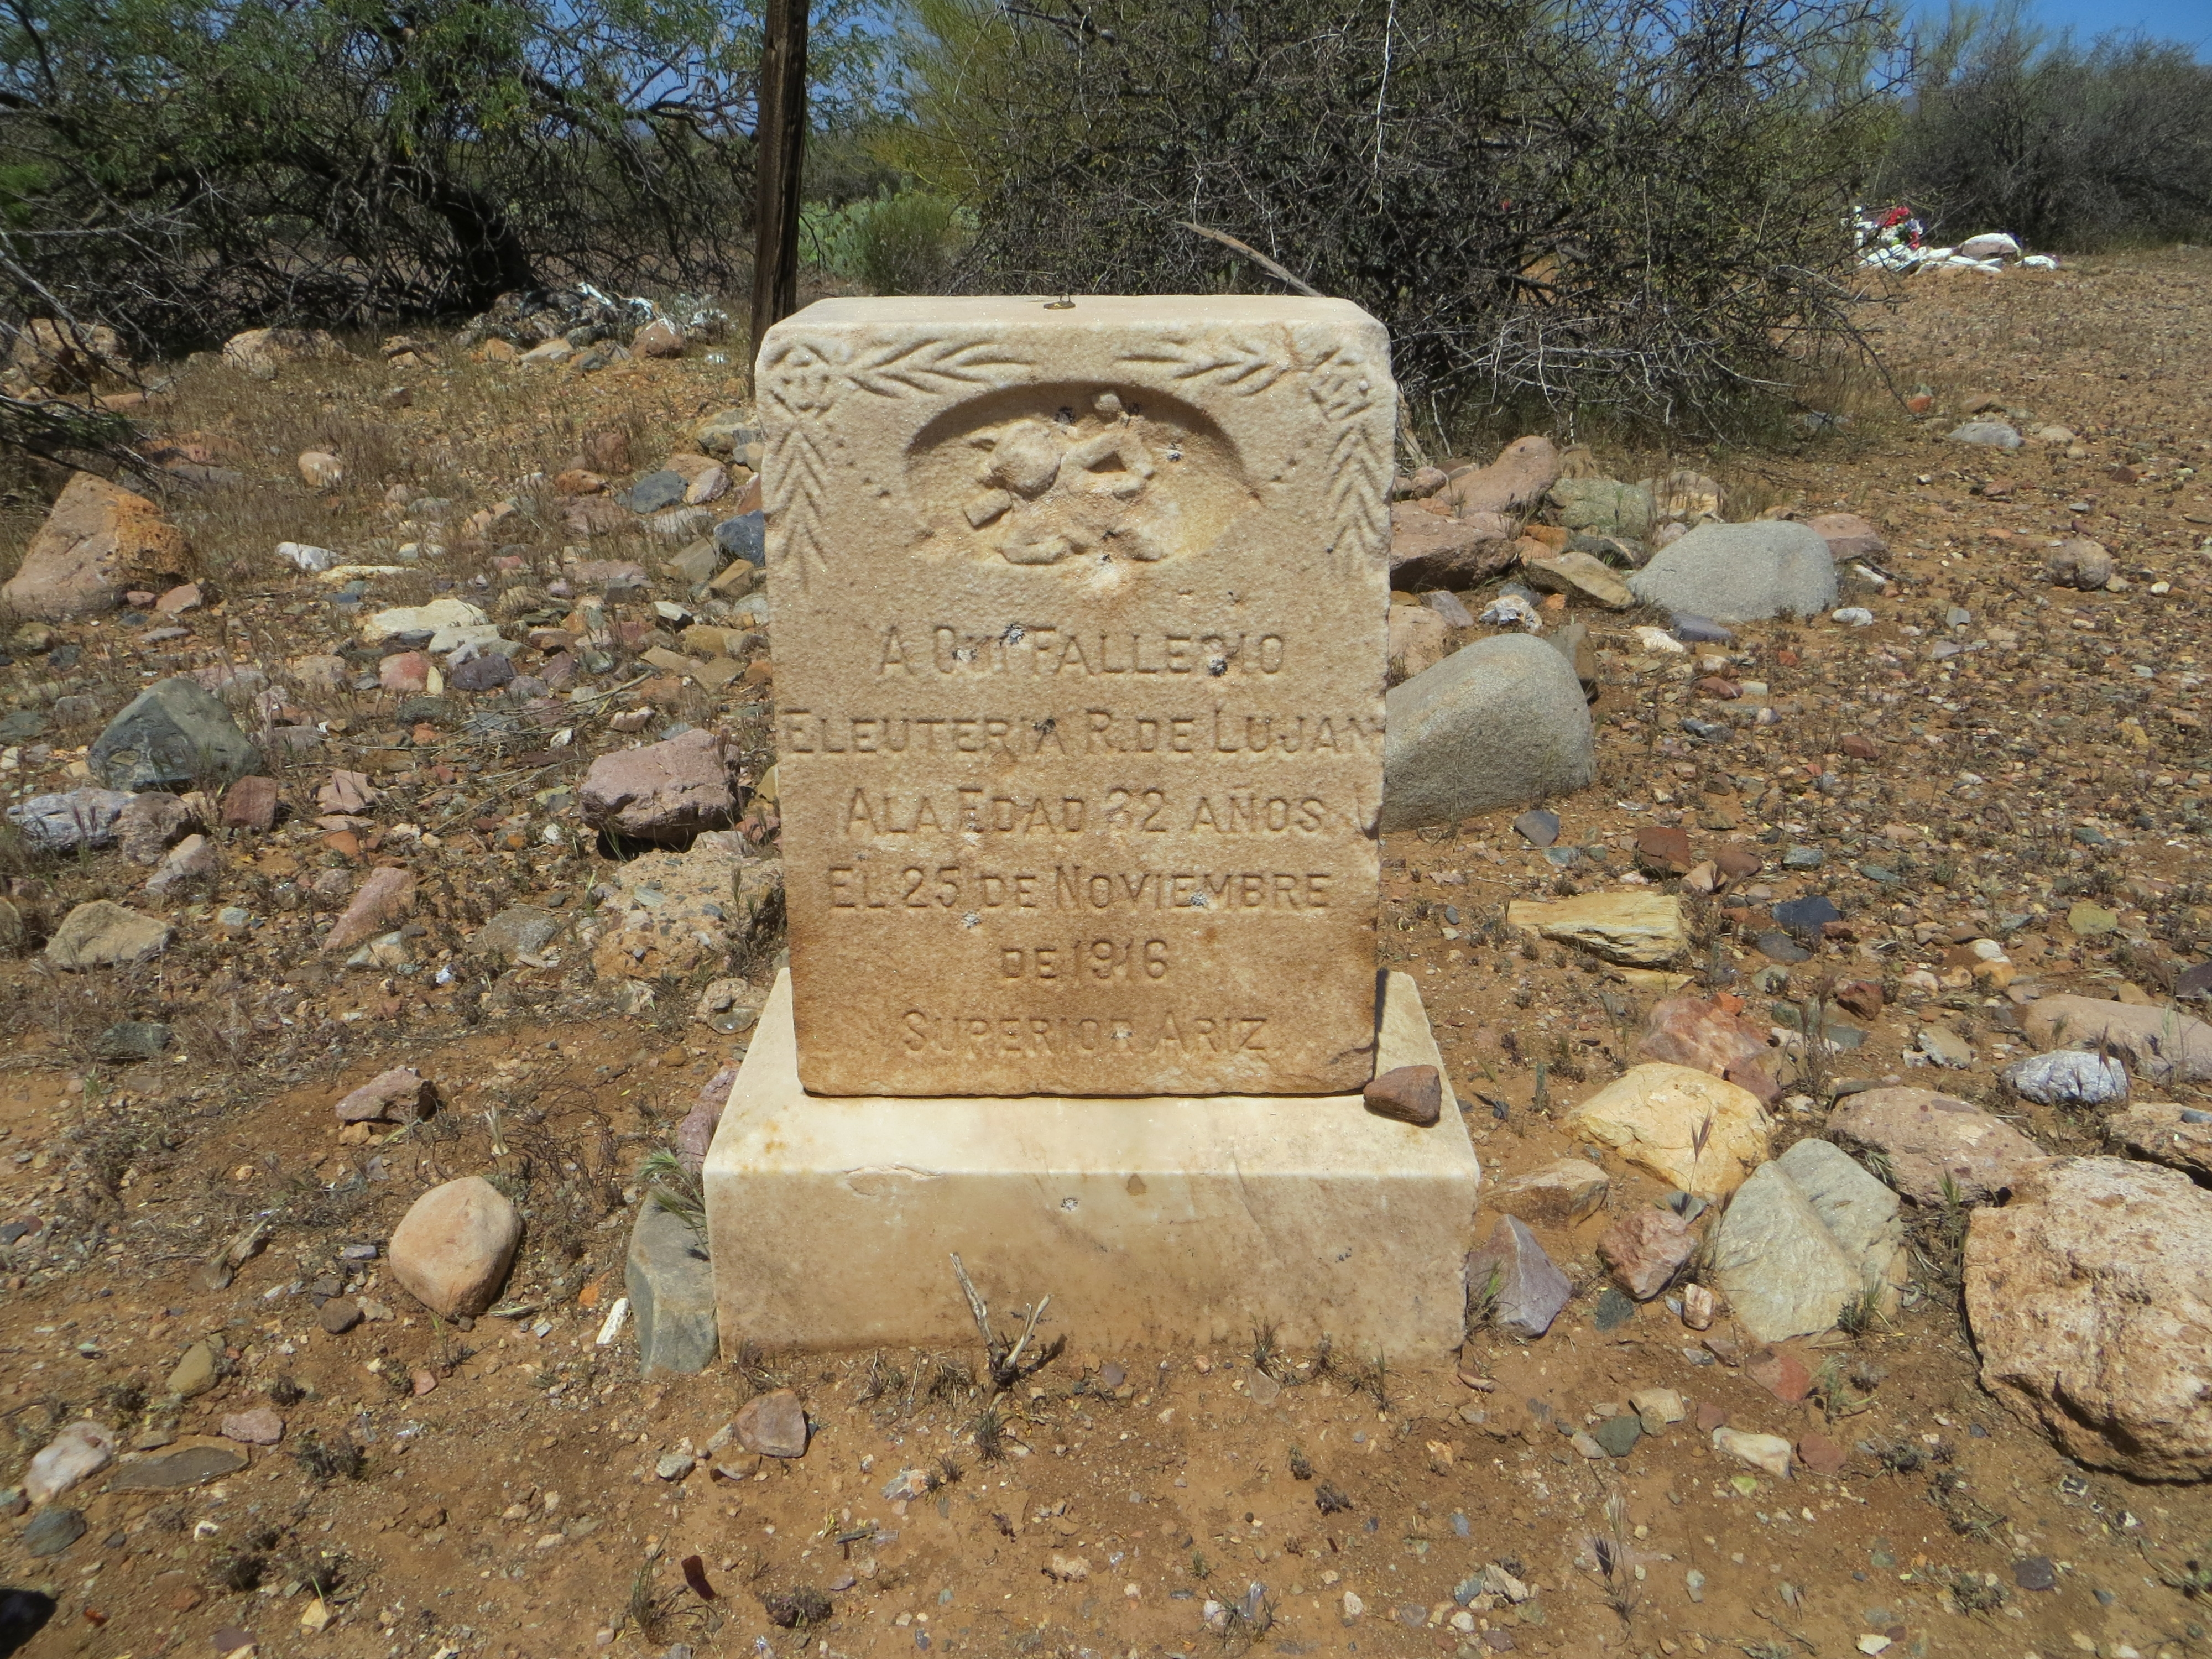 Grave at Historic Pinal Cemetery